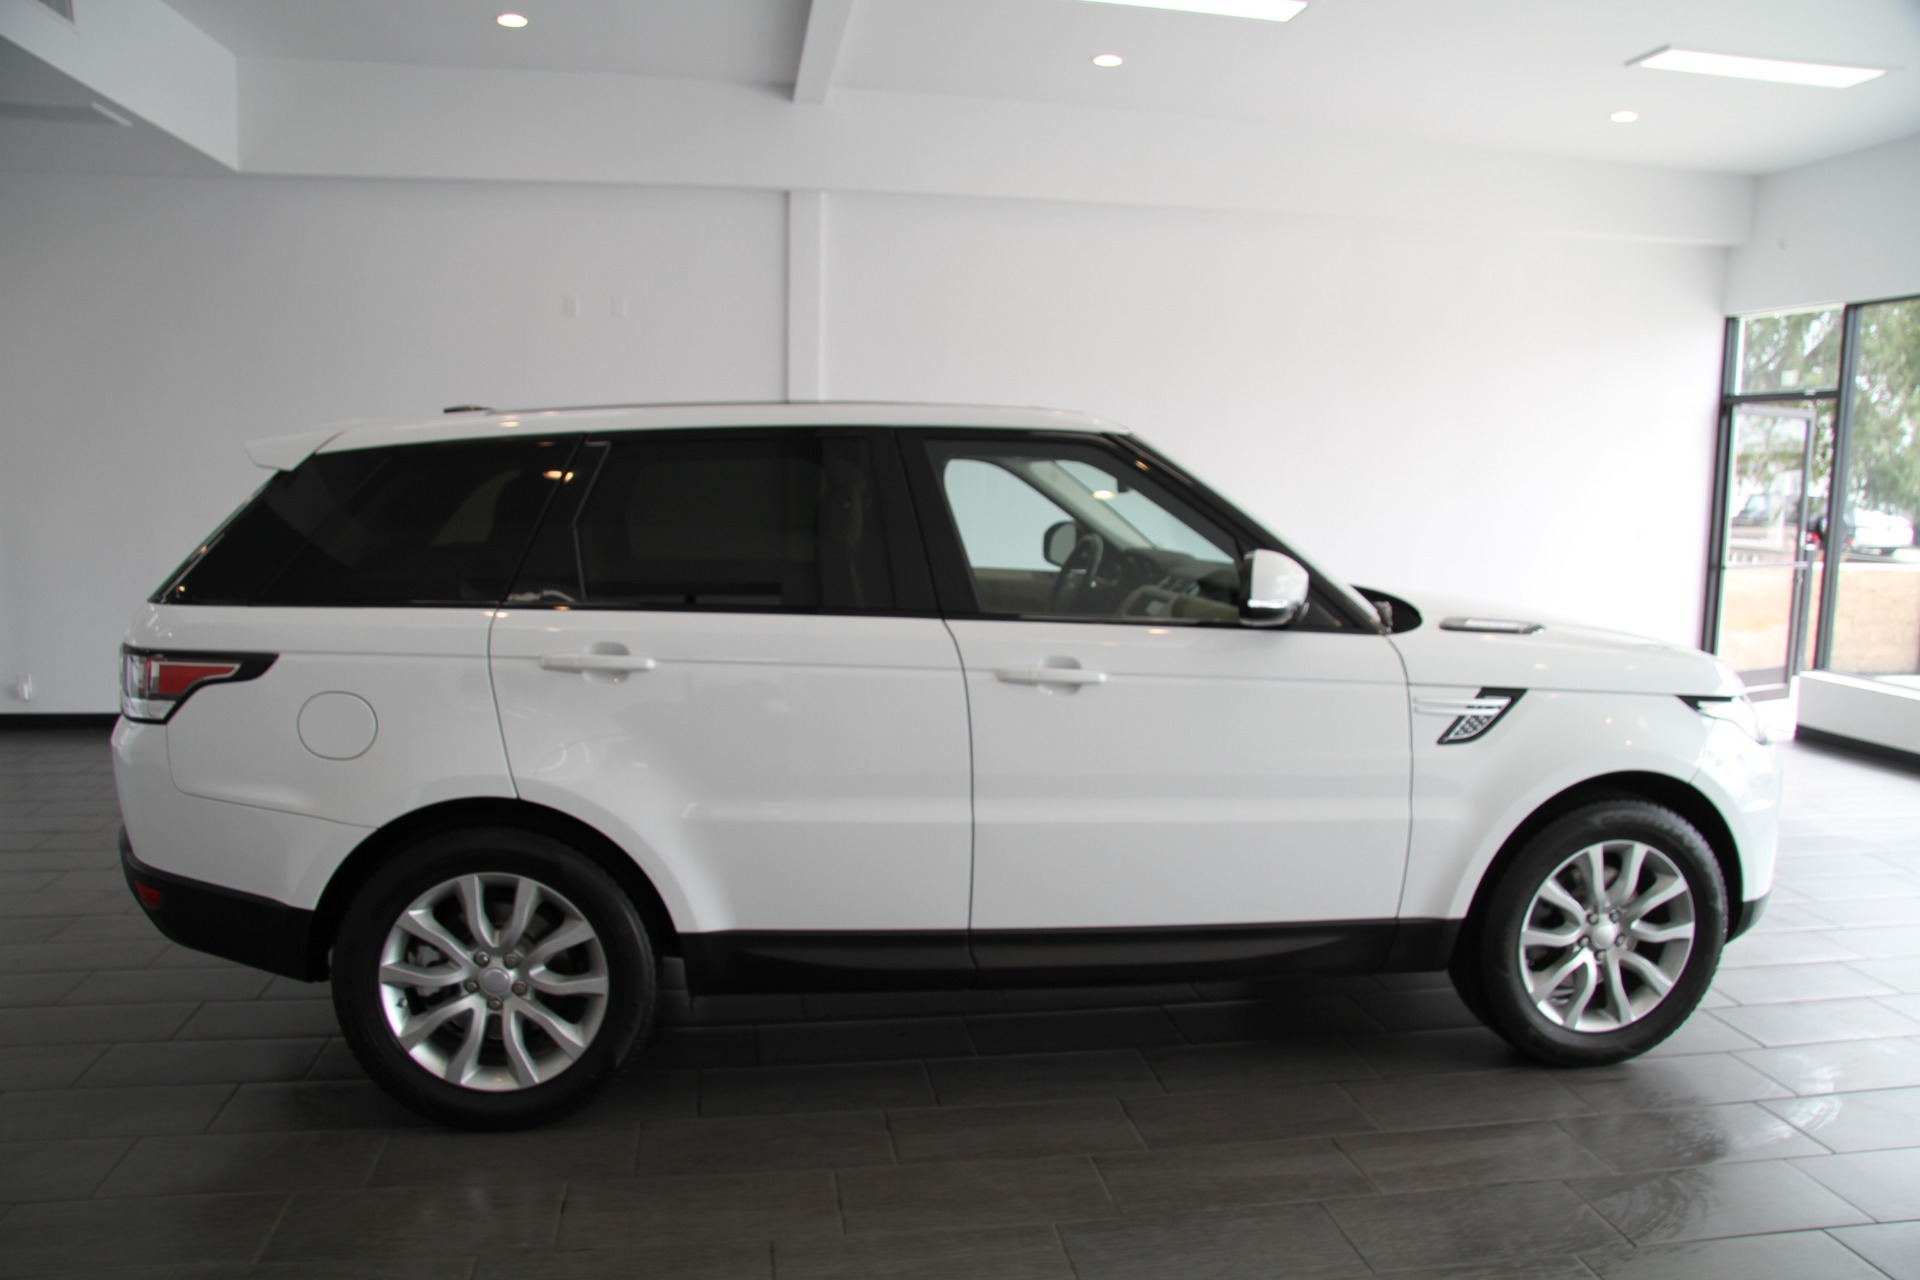 2015 Land Rover Range Rover Sport Hse Stock 6121 For